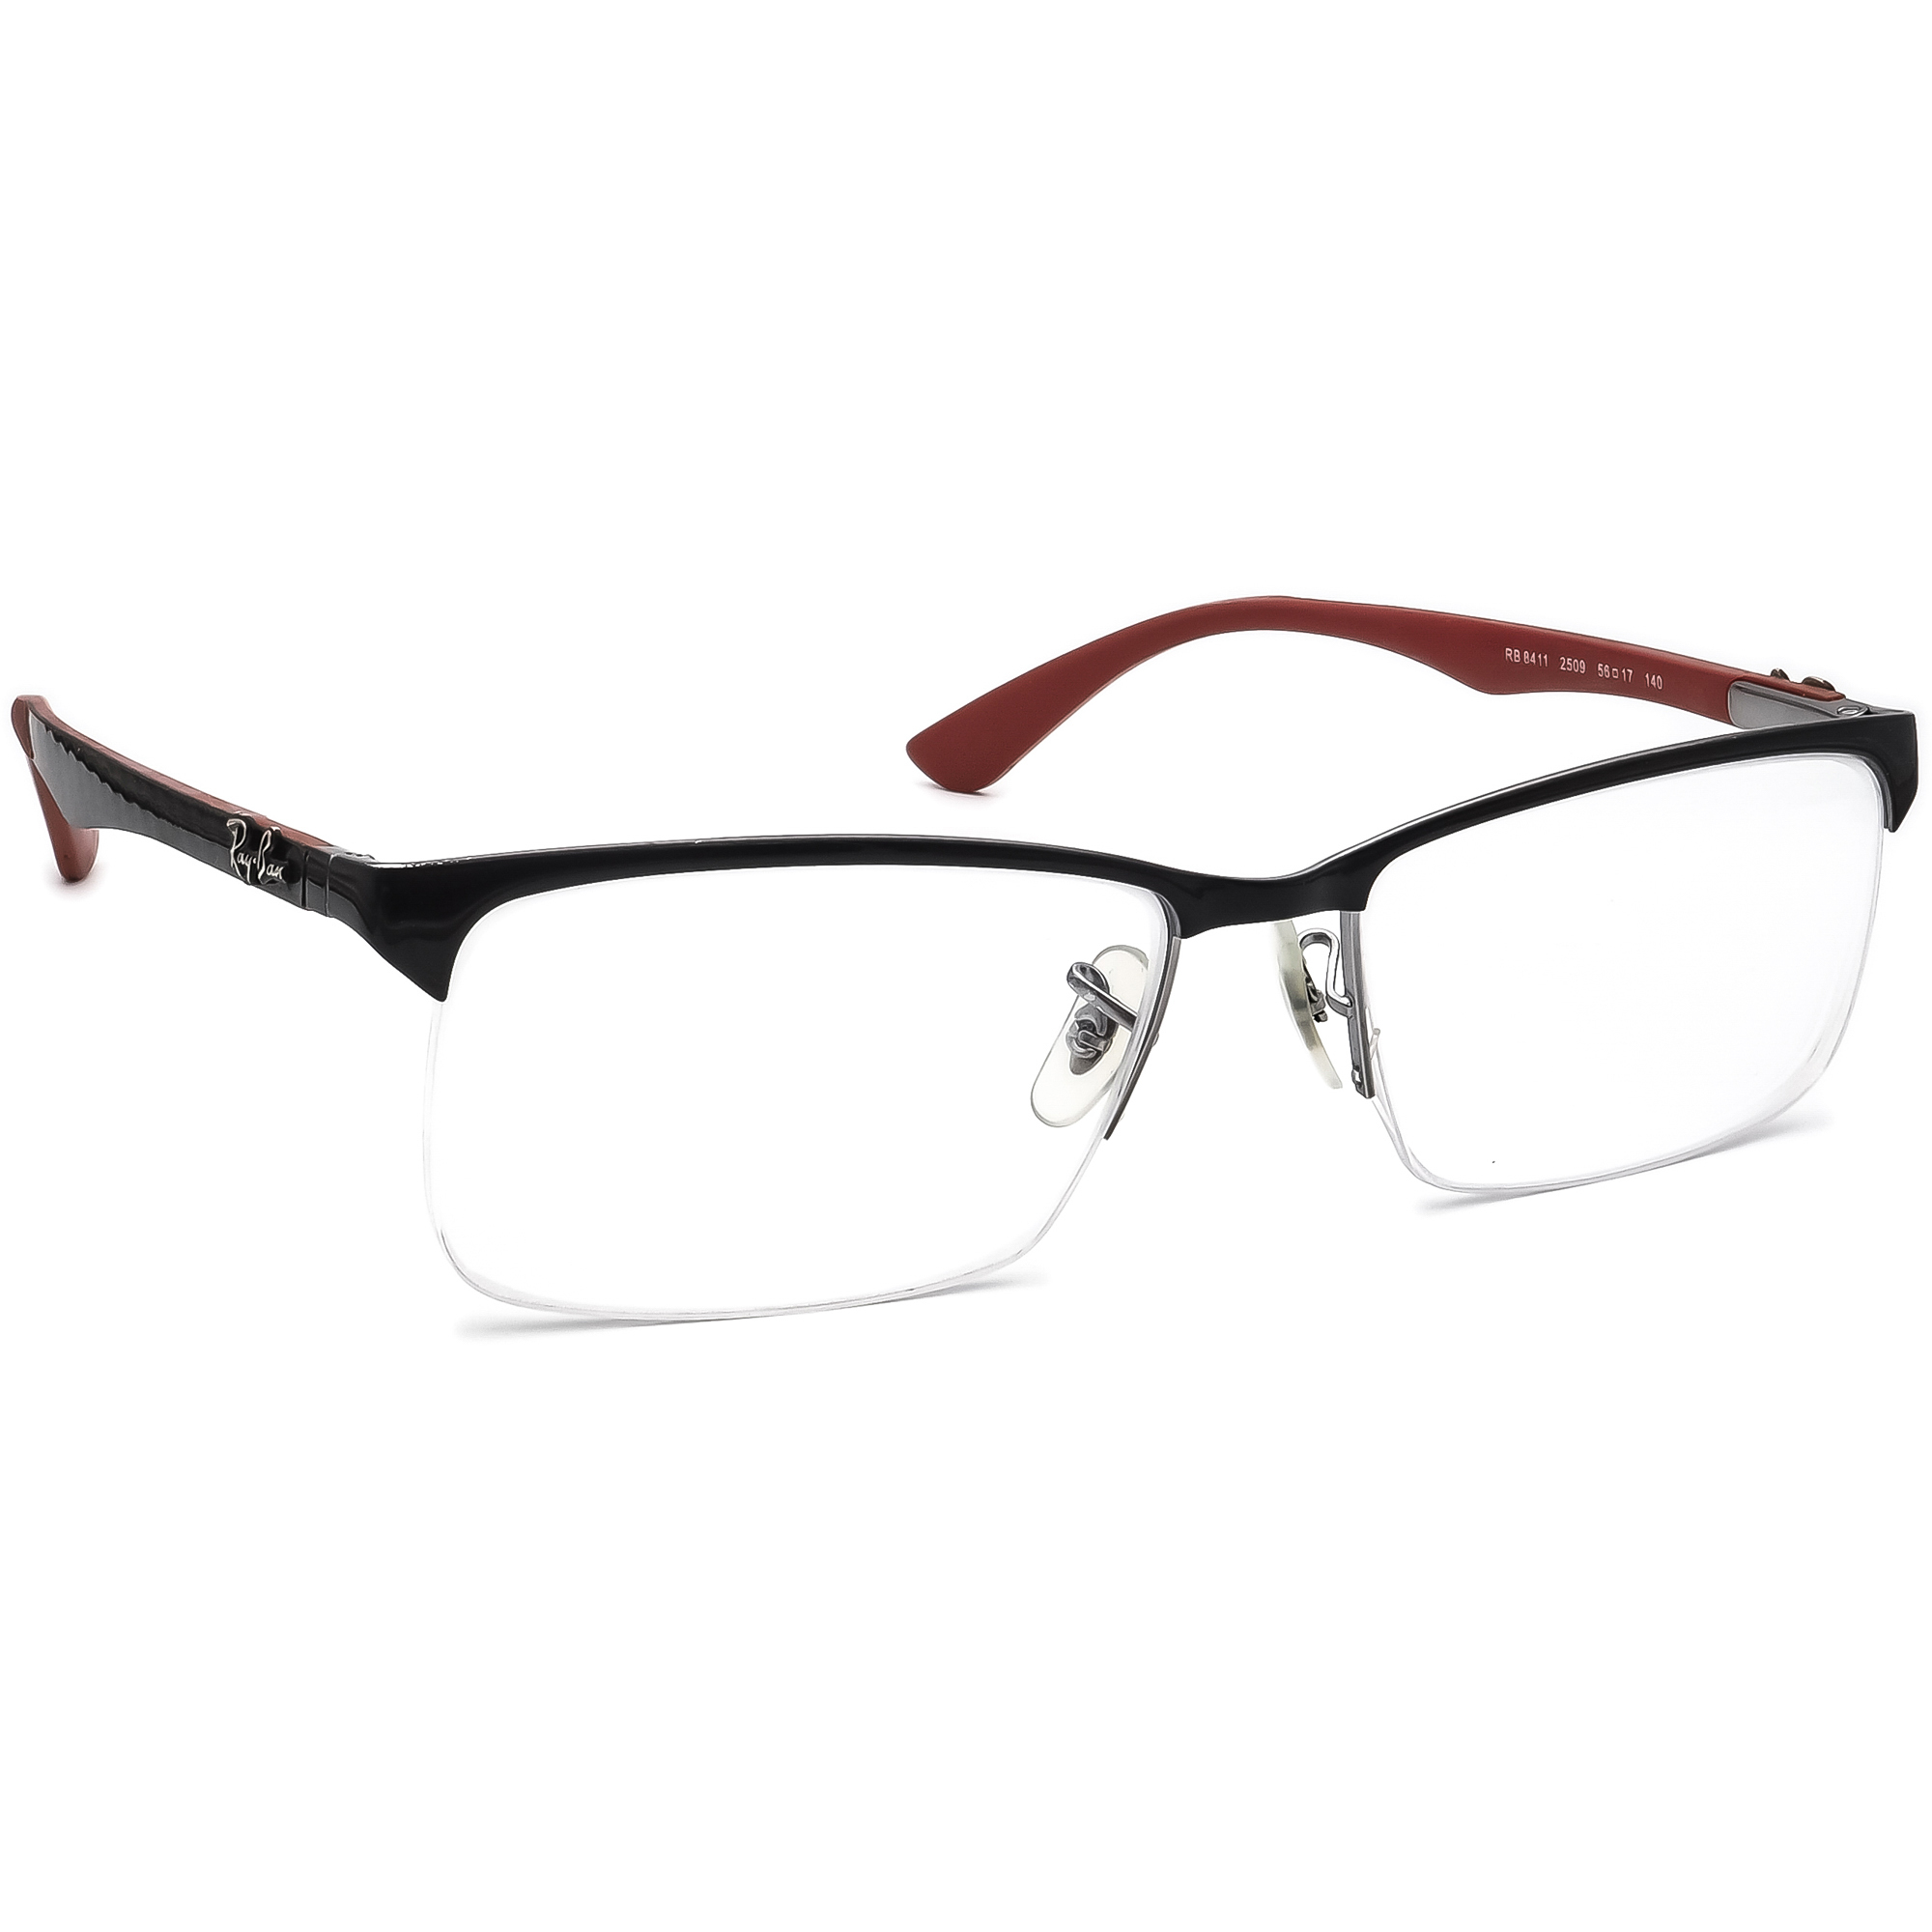 Ray Ban Men's Eyeglasses RB 8411 2509 Black/Red Half Rim Frame 56[]17 140